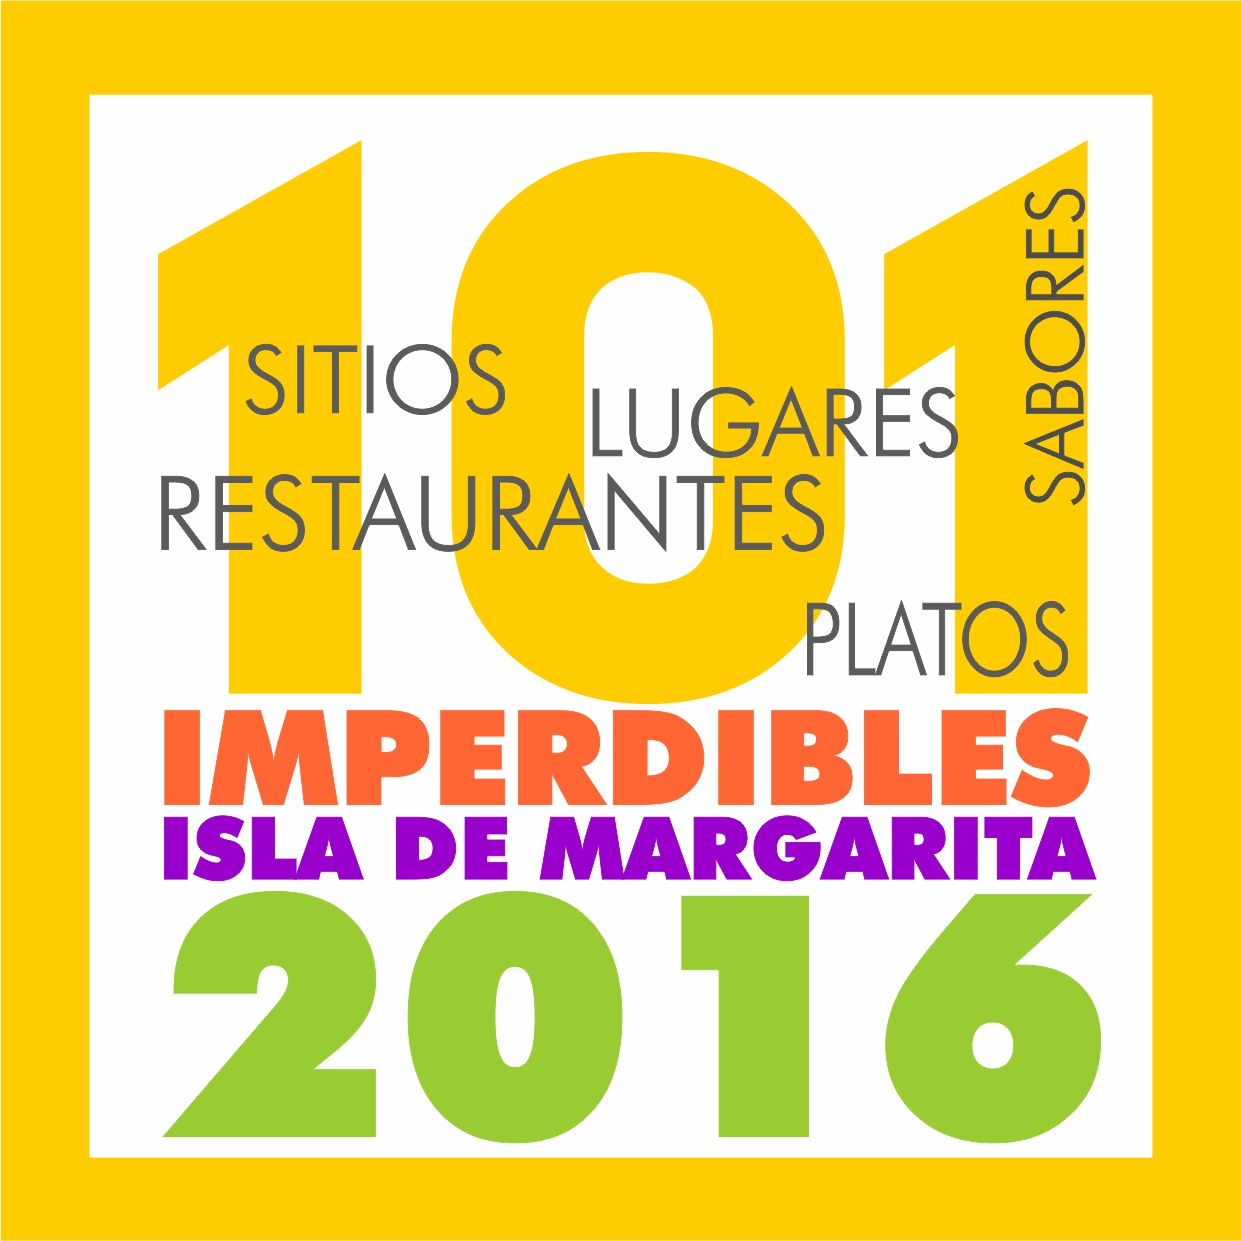 101 IMPERDIBLES DE MARGARITA 2016